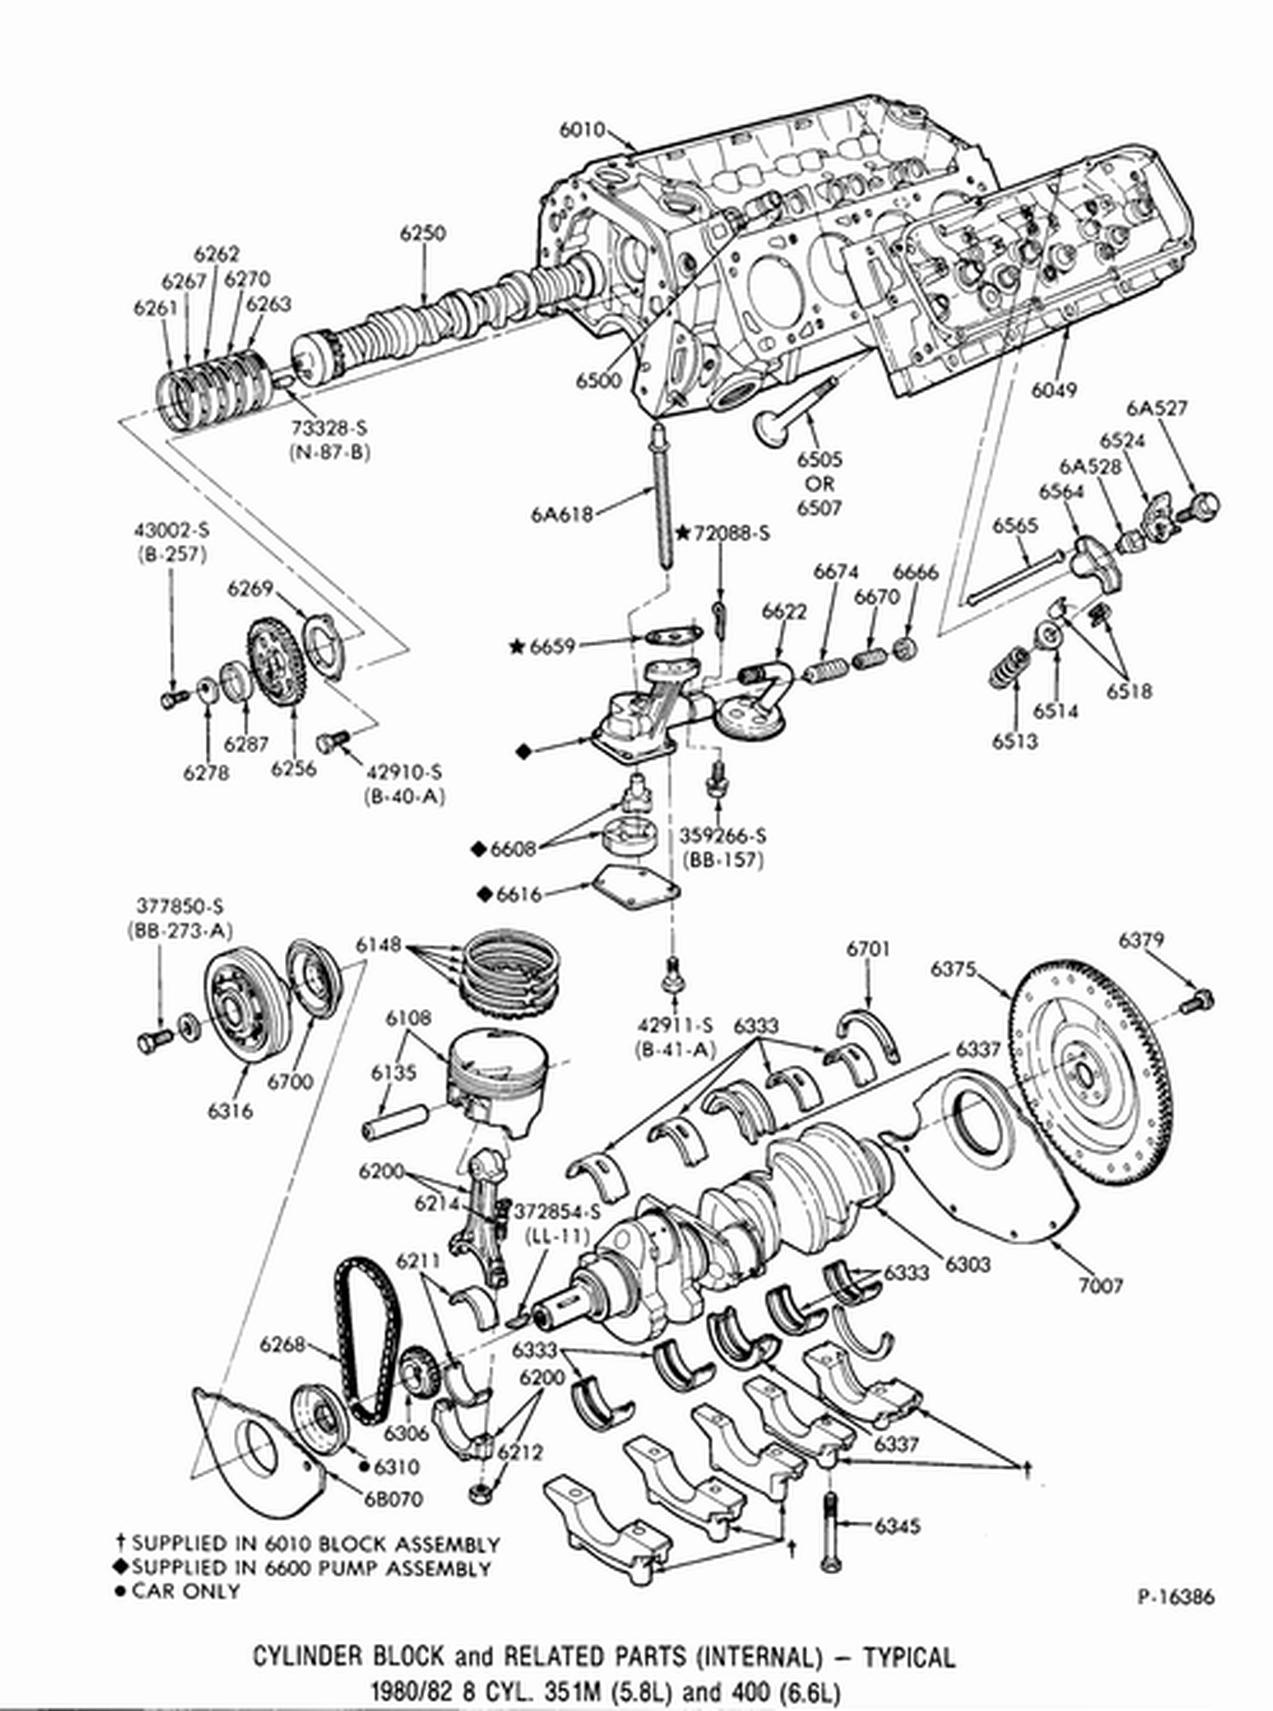 Ew 5629  1977 Ford 400 V8 Engine Diagram Free Diagram